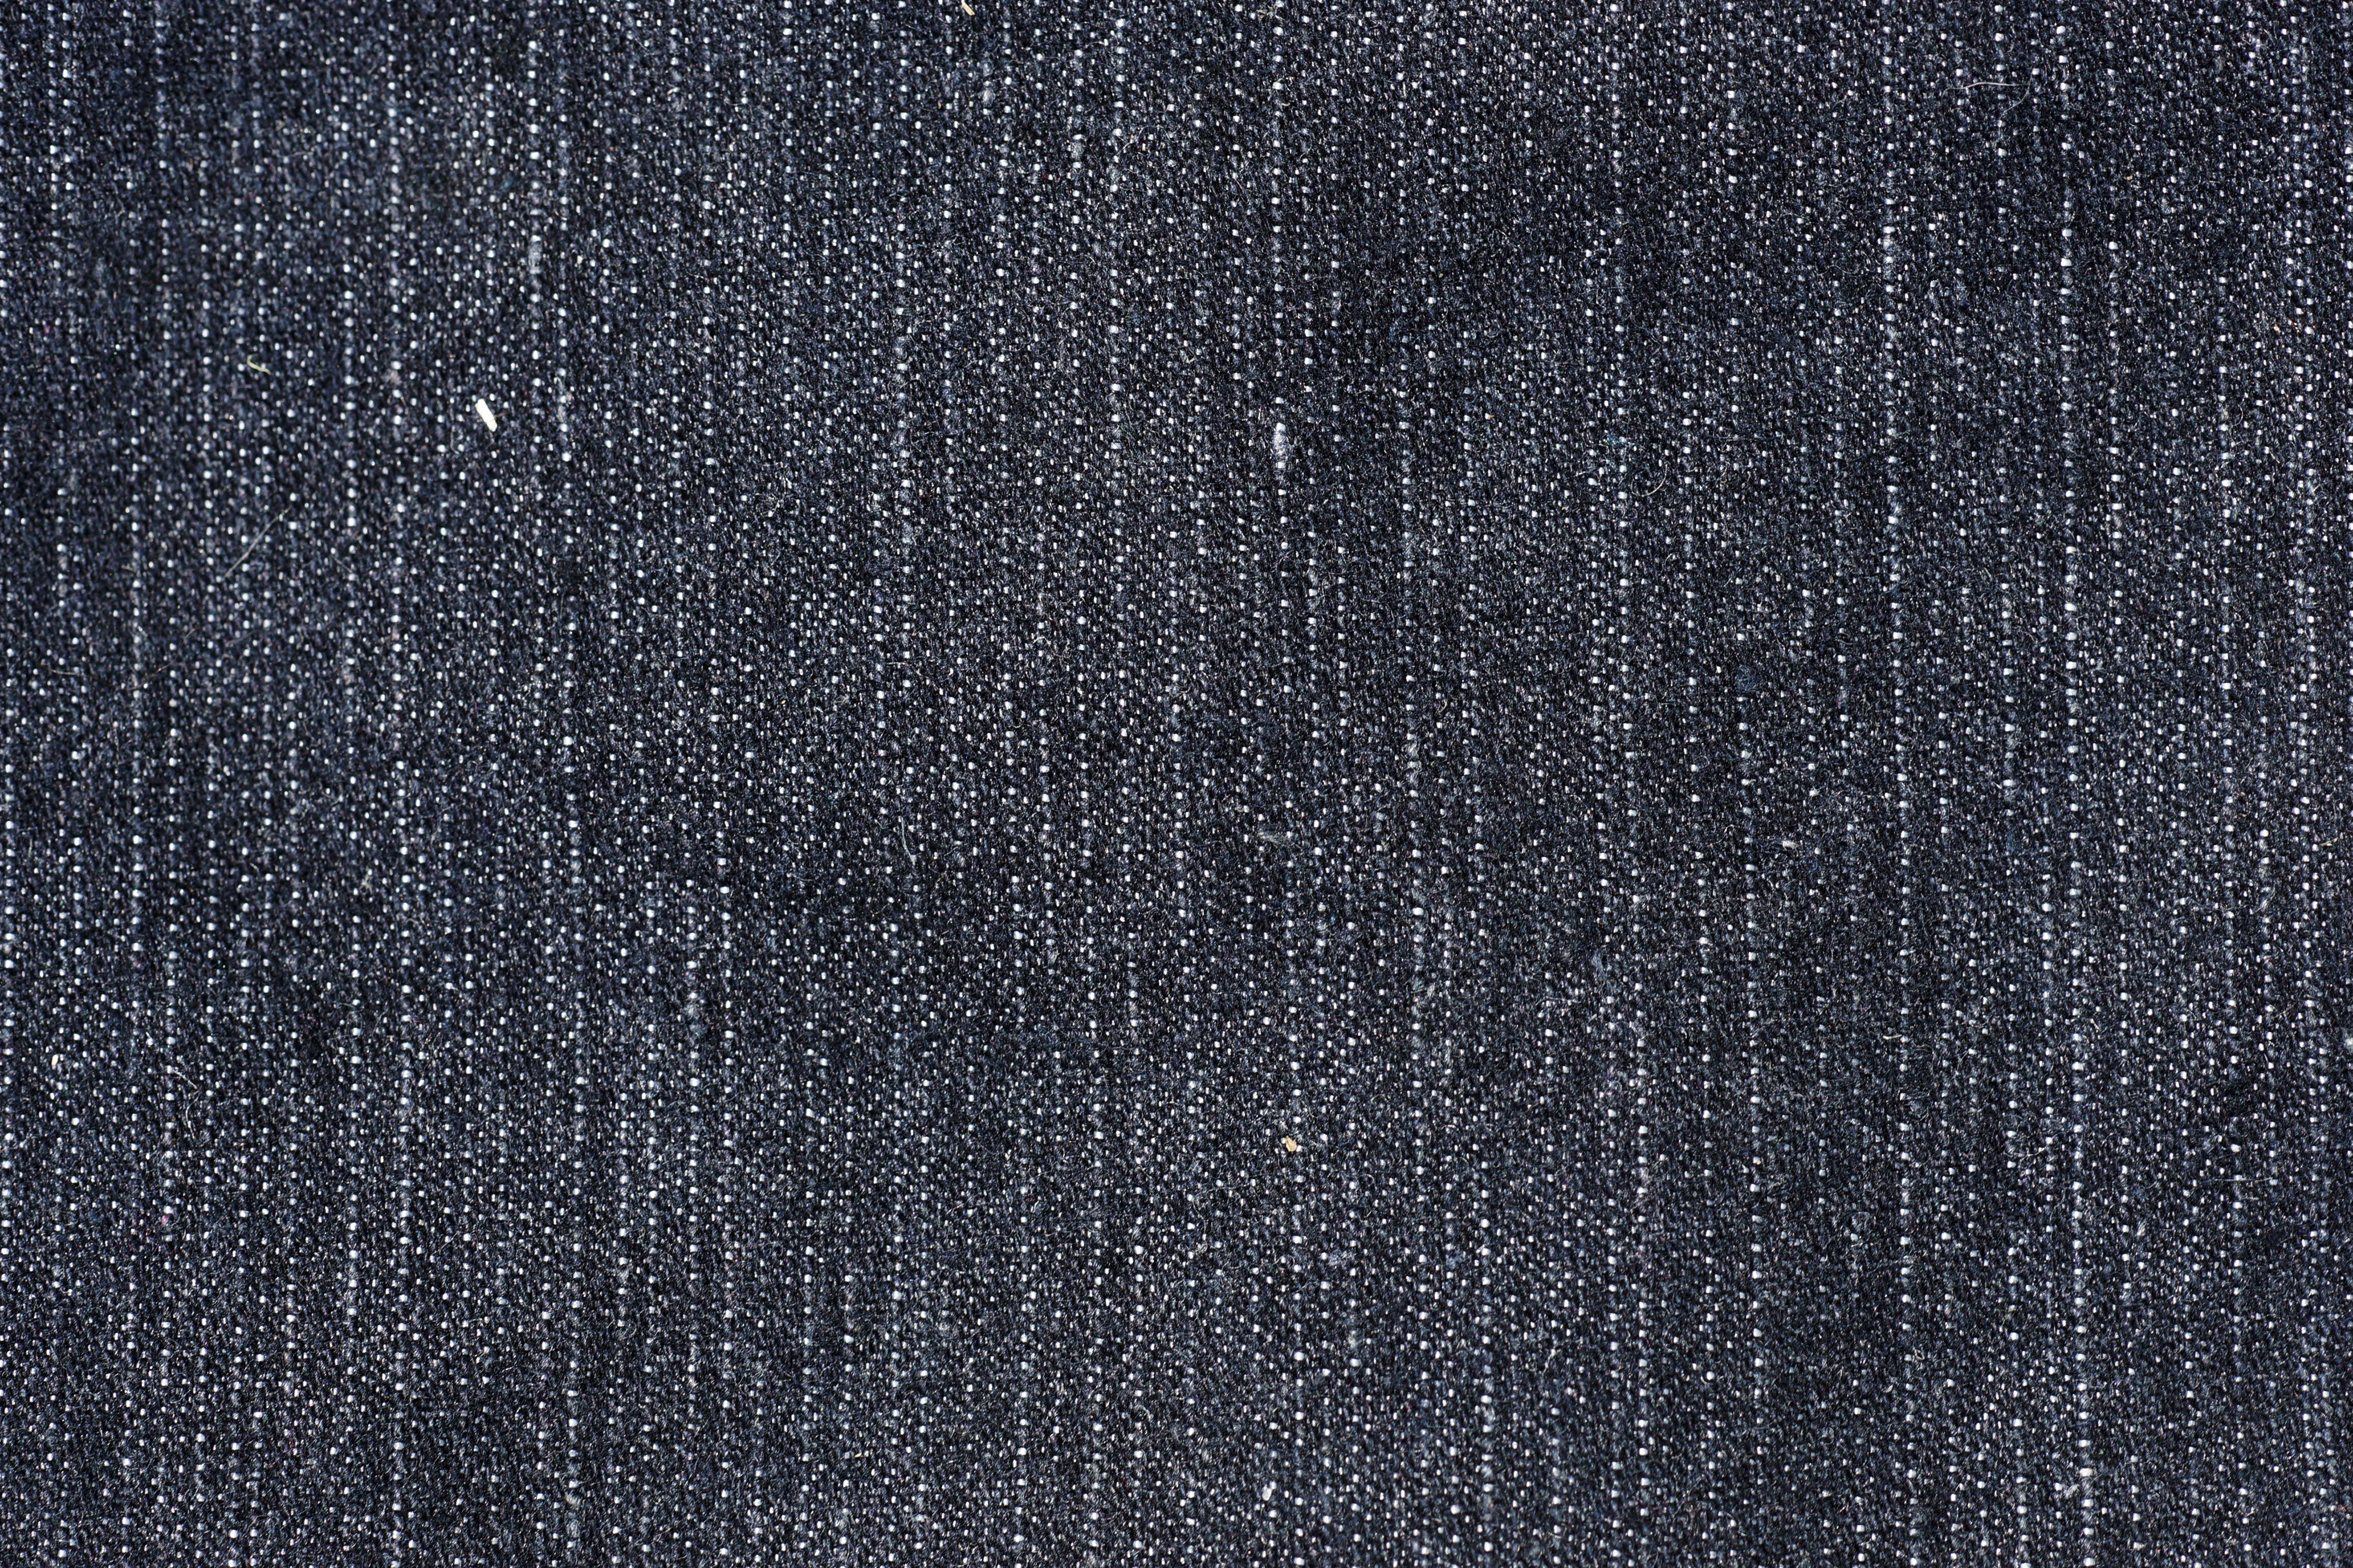 Straight and simple a black denim background cloth jeans fabric texture - http//www ...